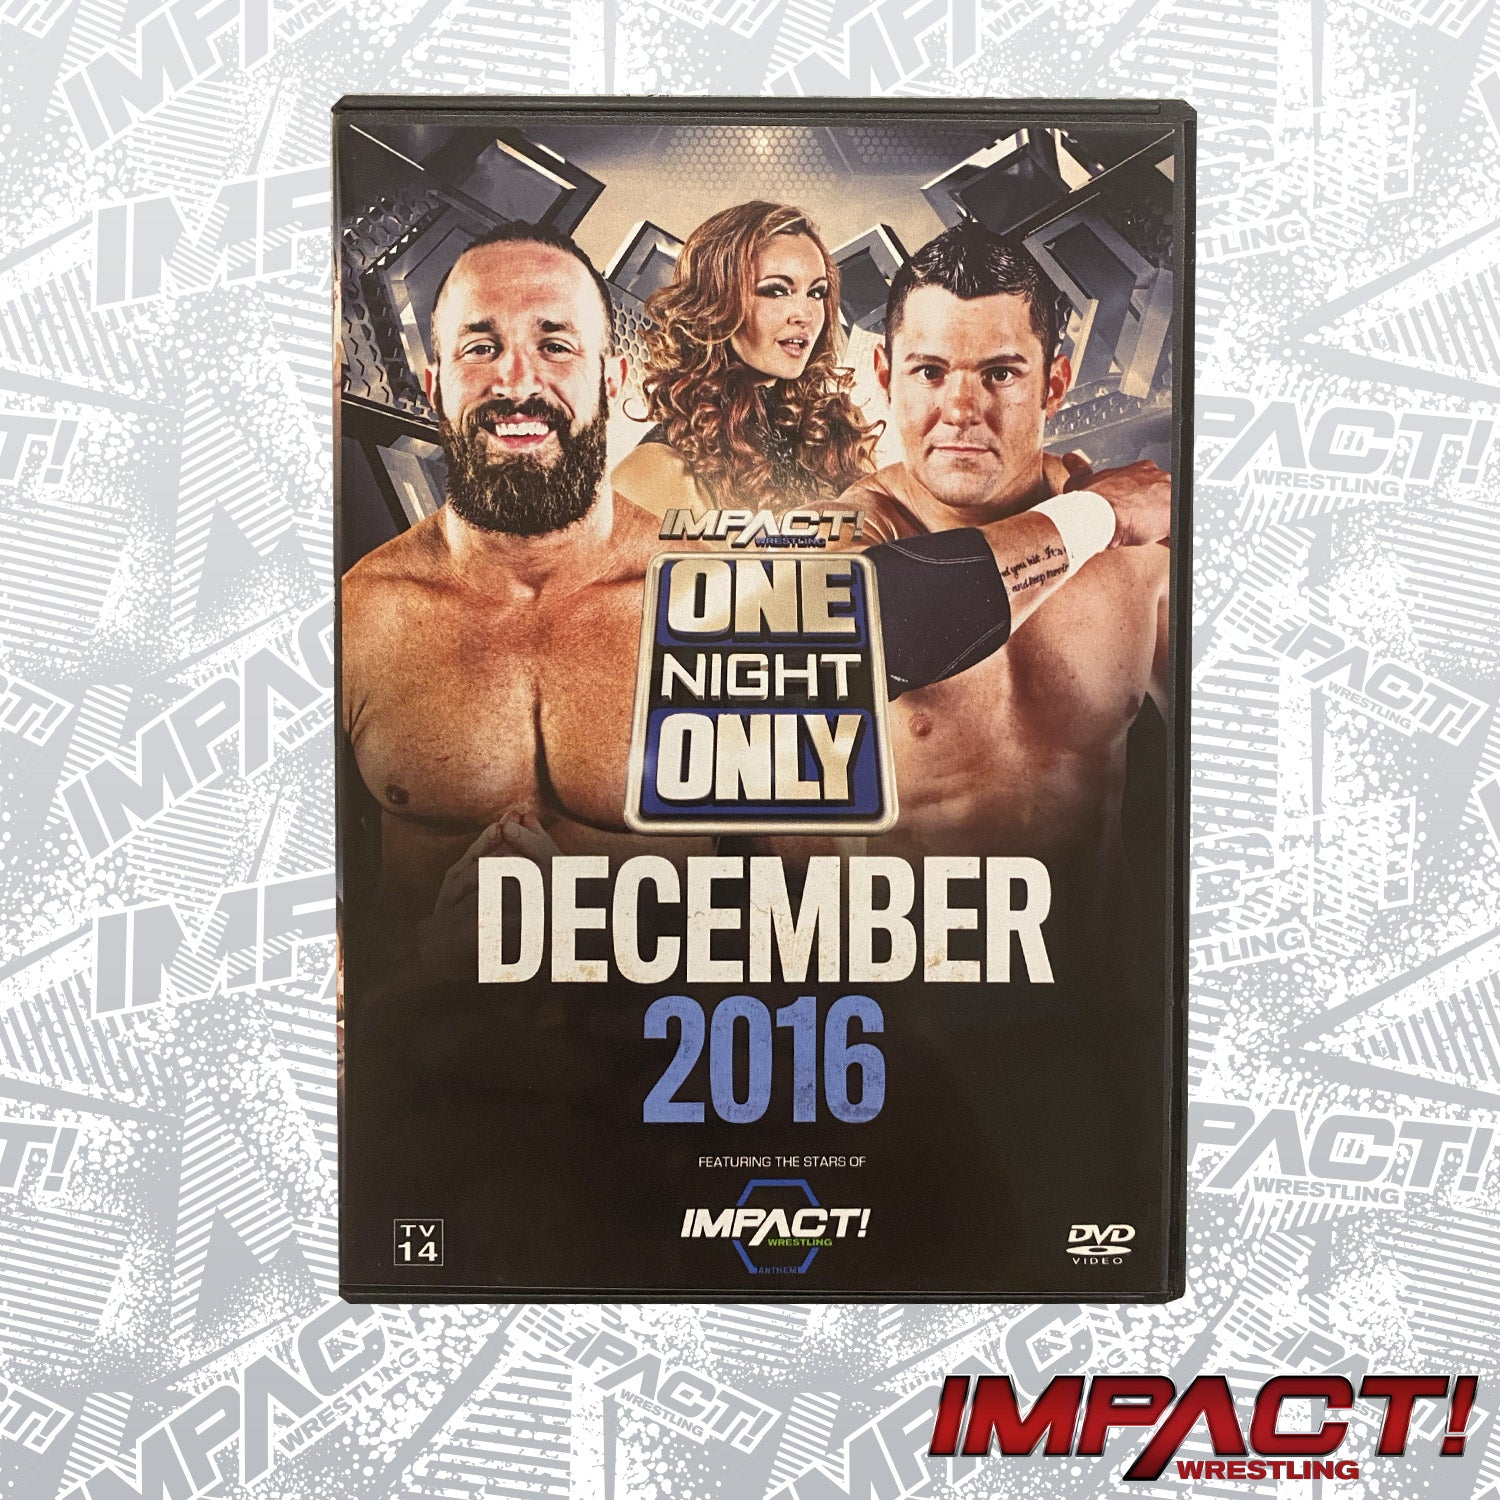 One Night Only: December 2016 DVD